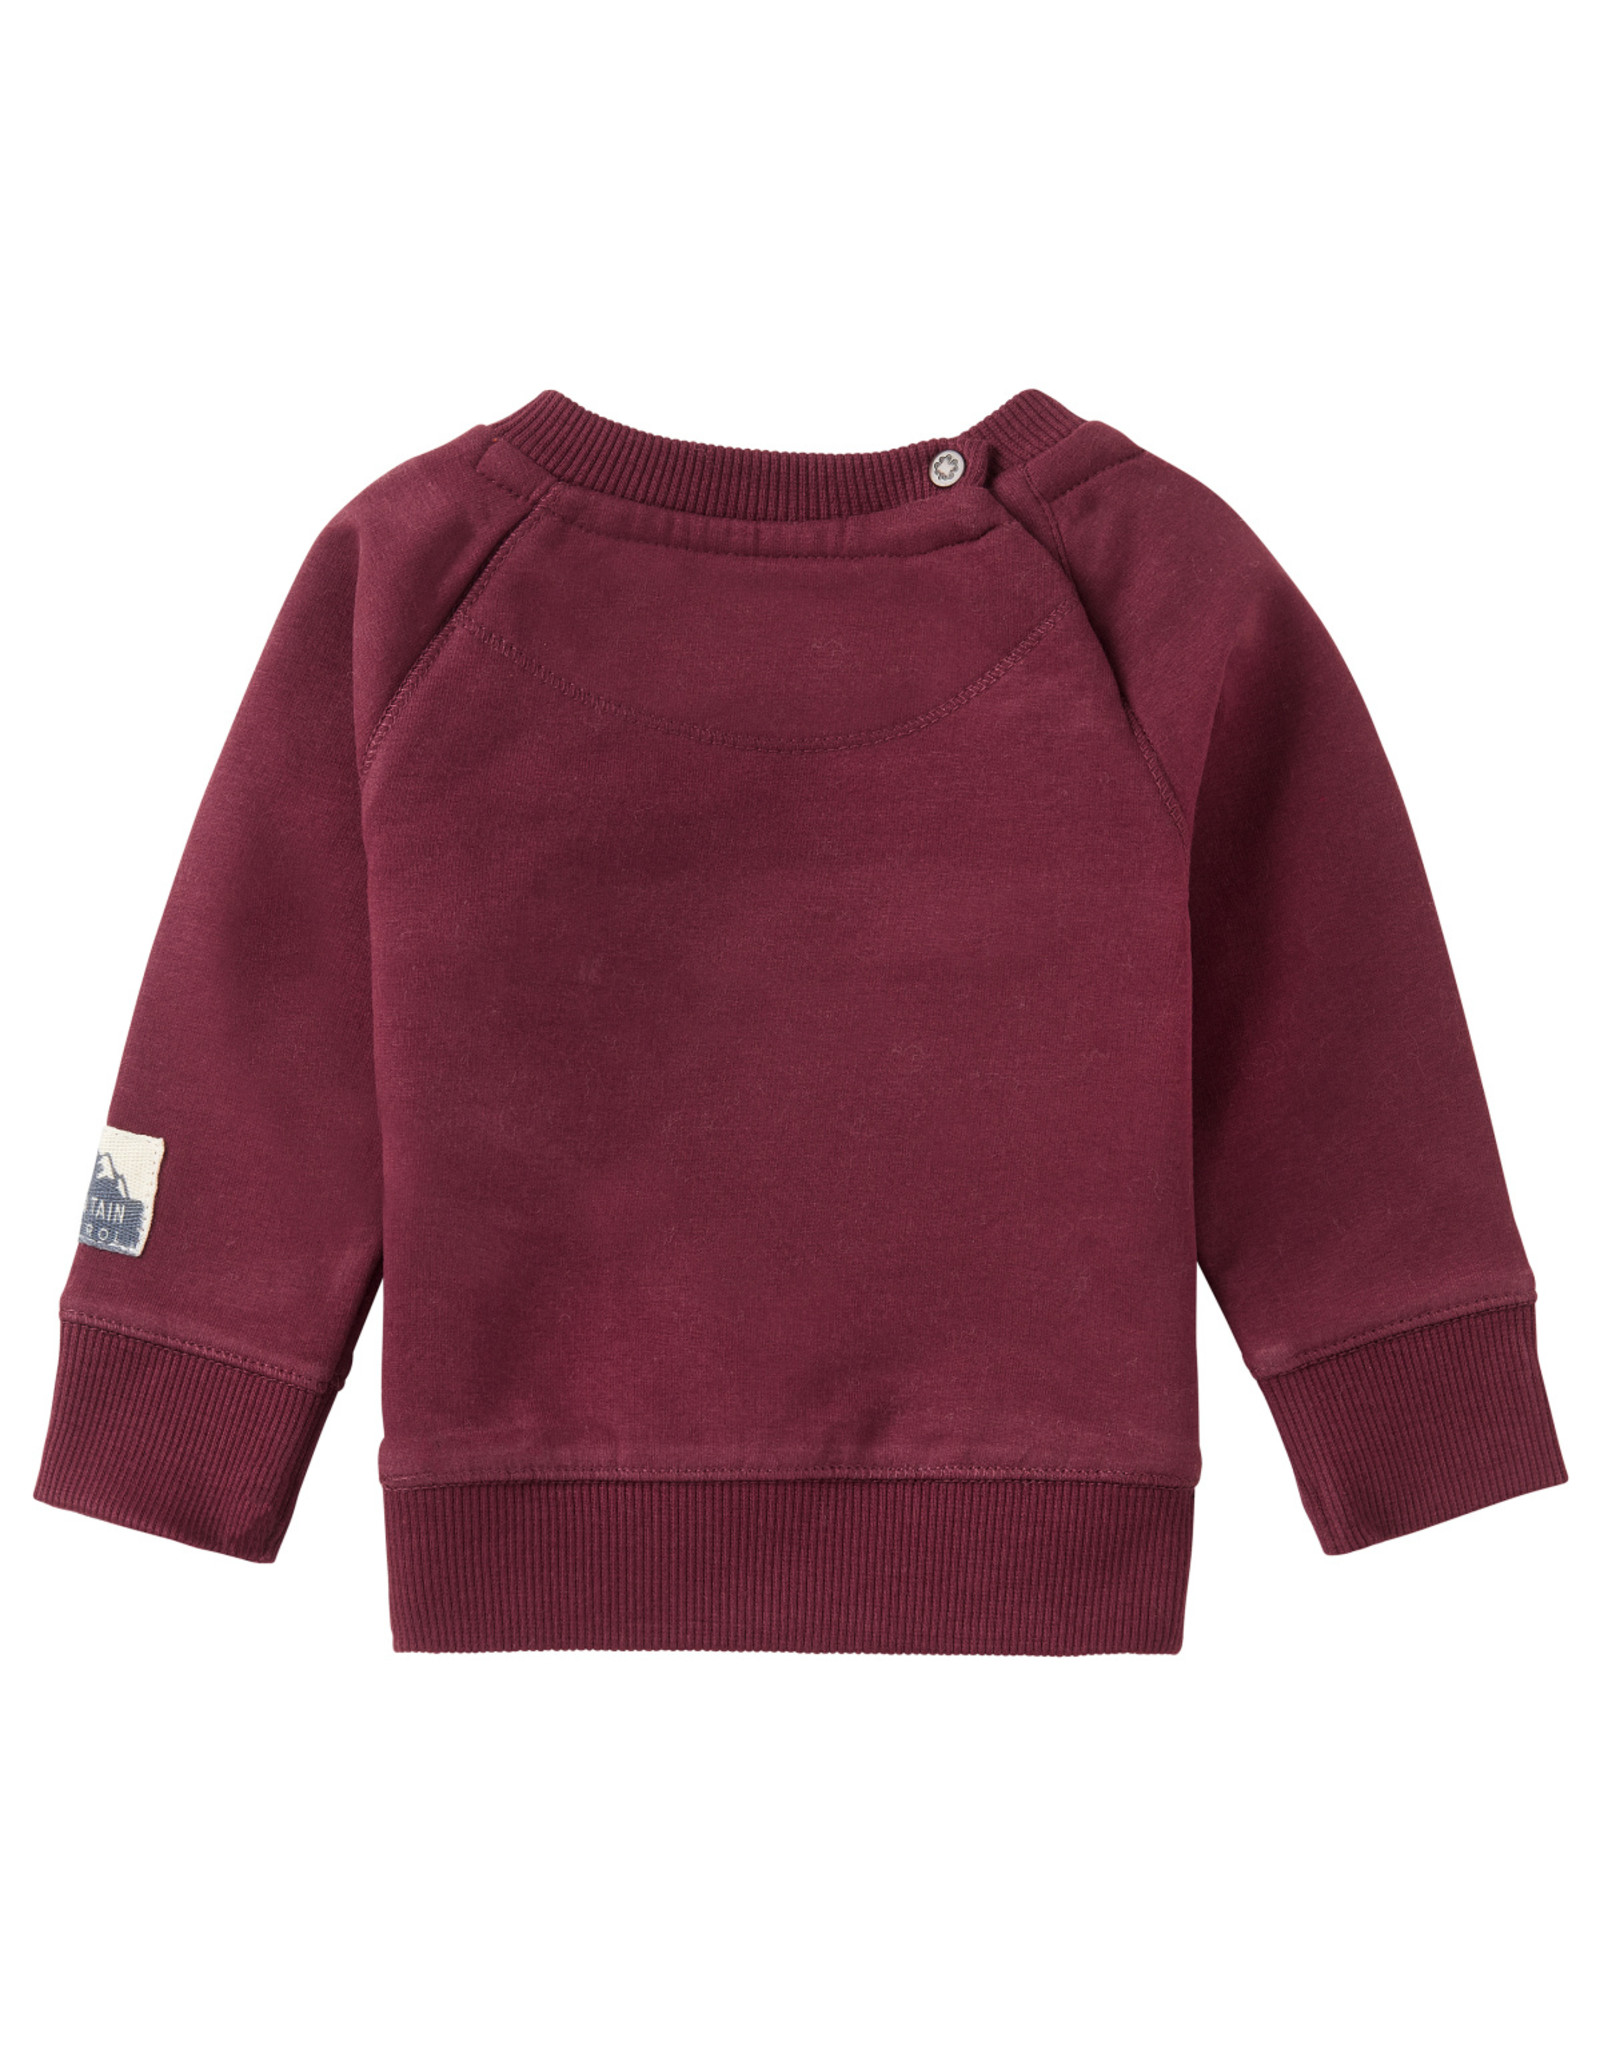 Noppies Noppies B Sweater LS Vredendal Dusty Red